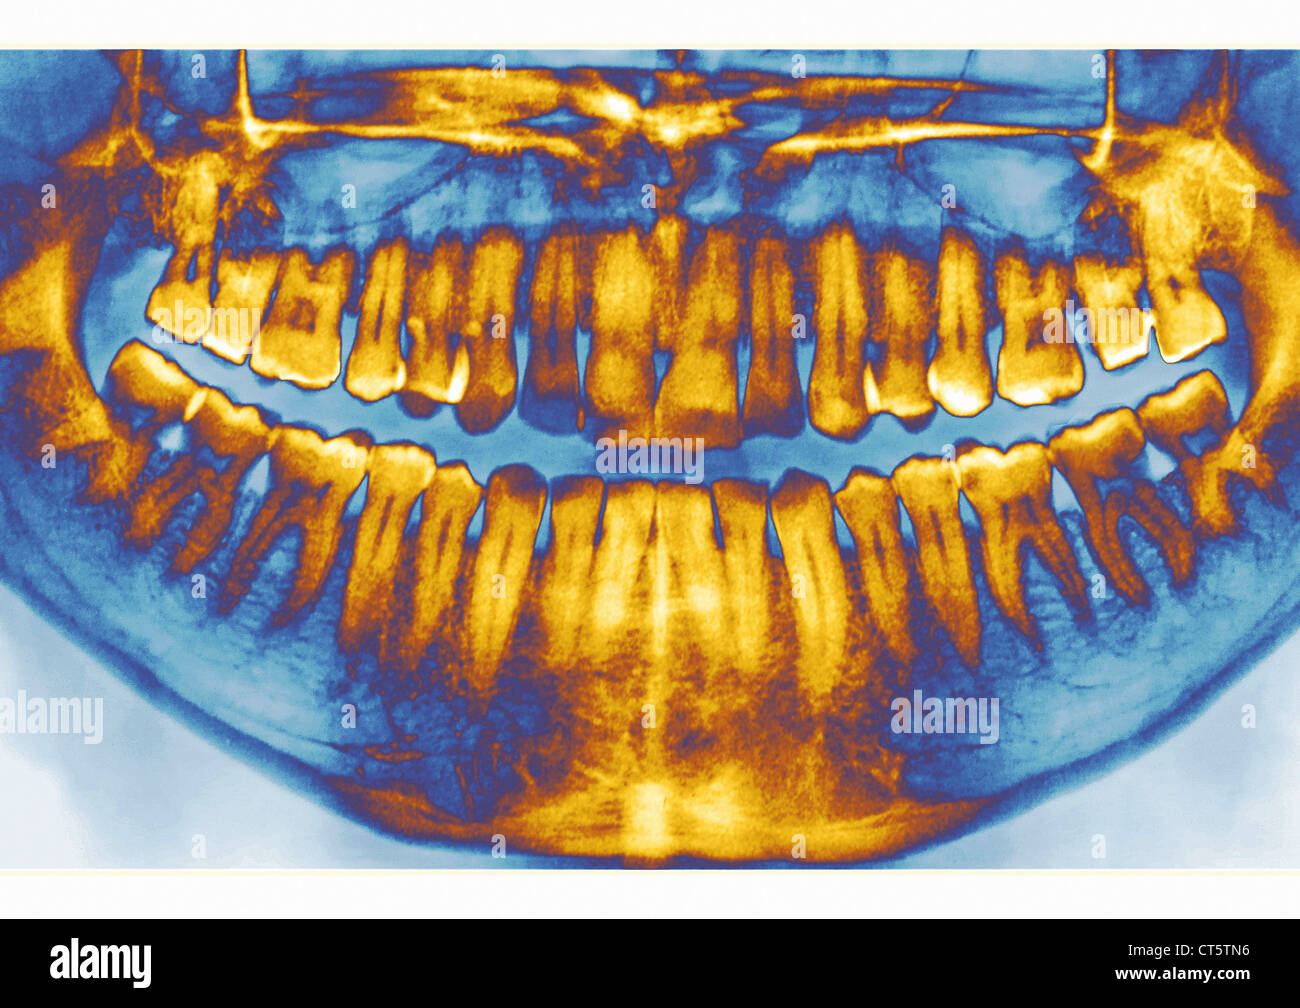 DENTAL X-RAY RESULT - Stock Image